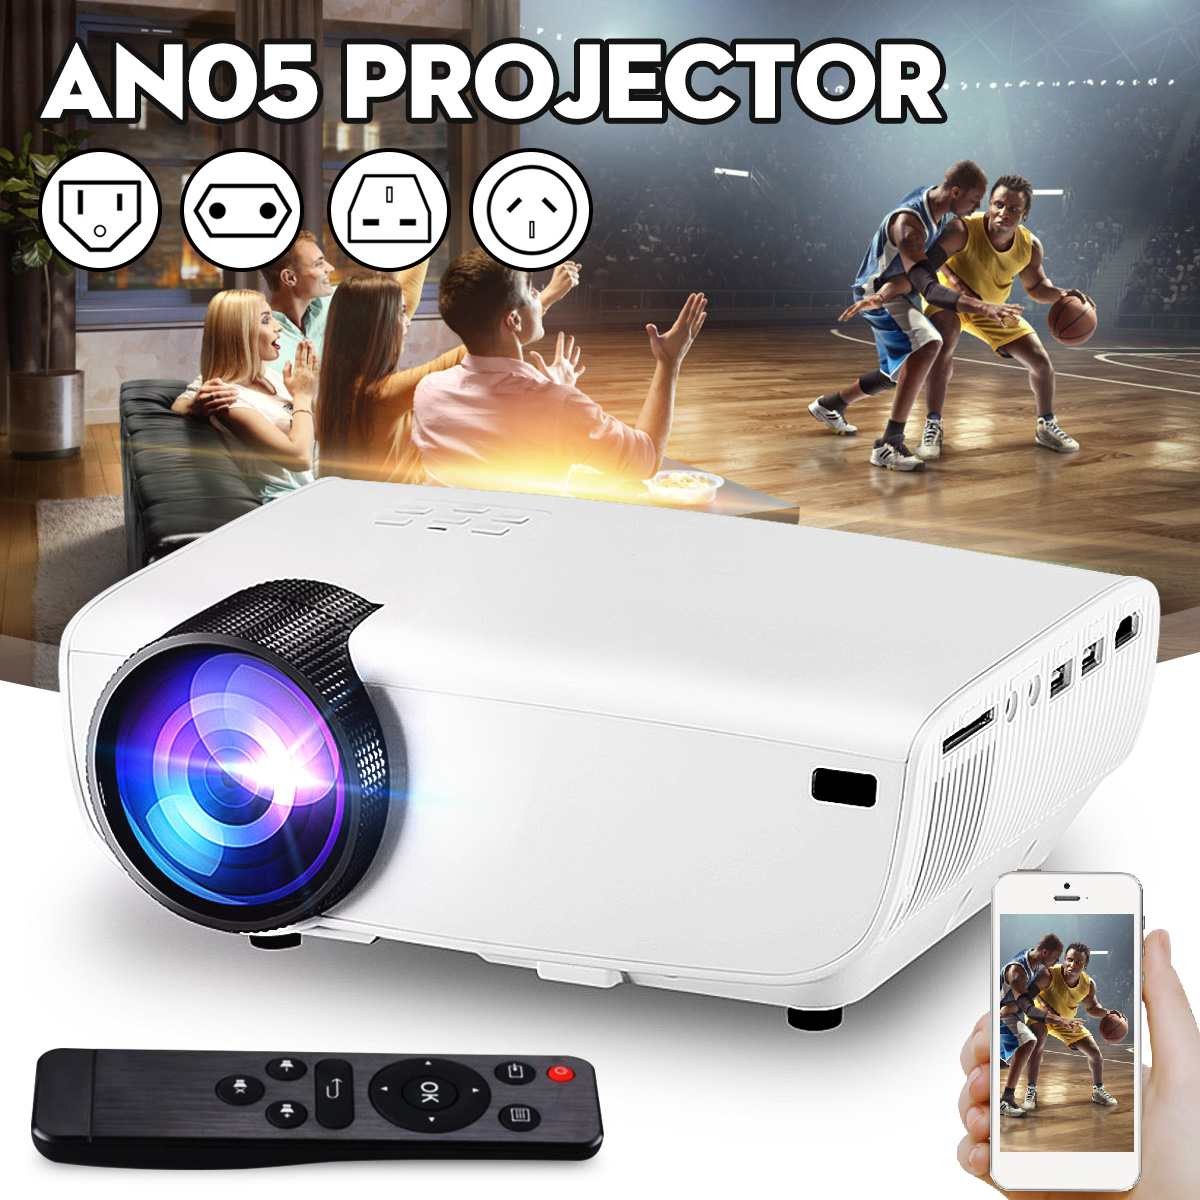 LEORY 2019 Newest <font><b>7000</b></font> <font><b>Lumens</b></font> 3D LED Projector USB Smartphone Display HDMI/USB/AV/SD/U Flash Disk Beamer Home Theater Projectors image